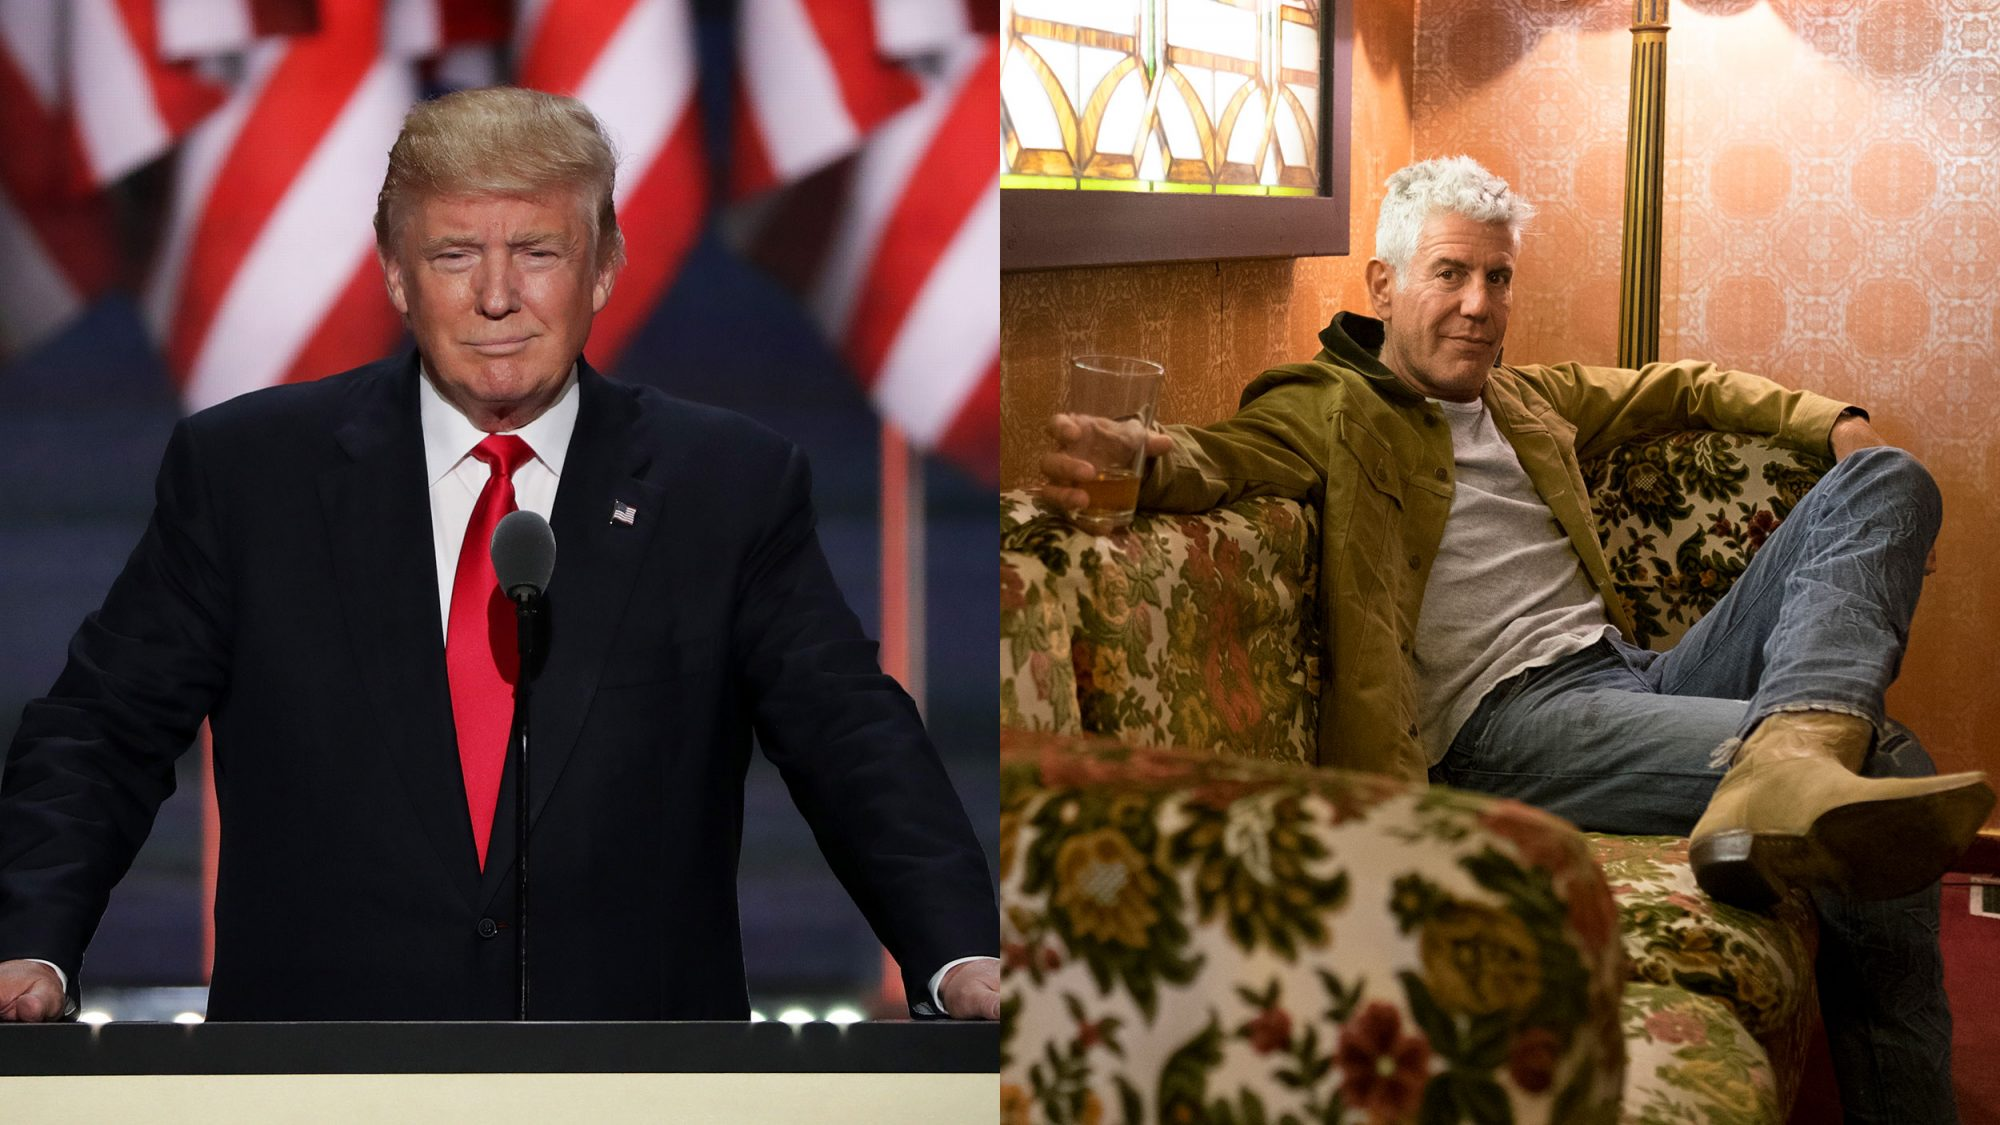 Donald Trump, Anthony Bourdain